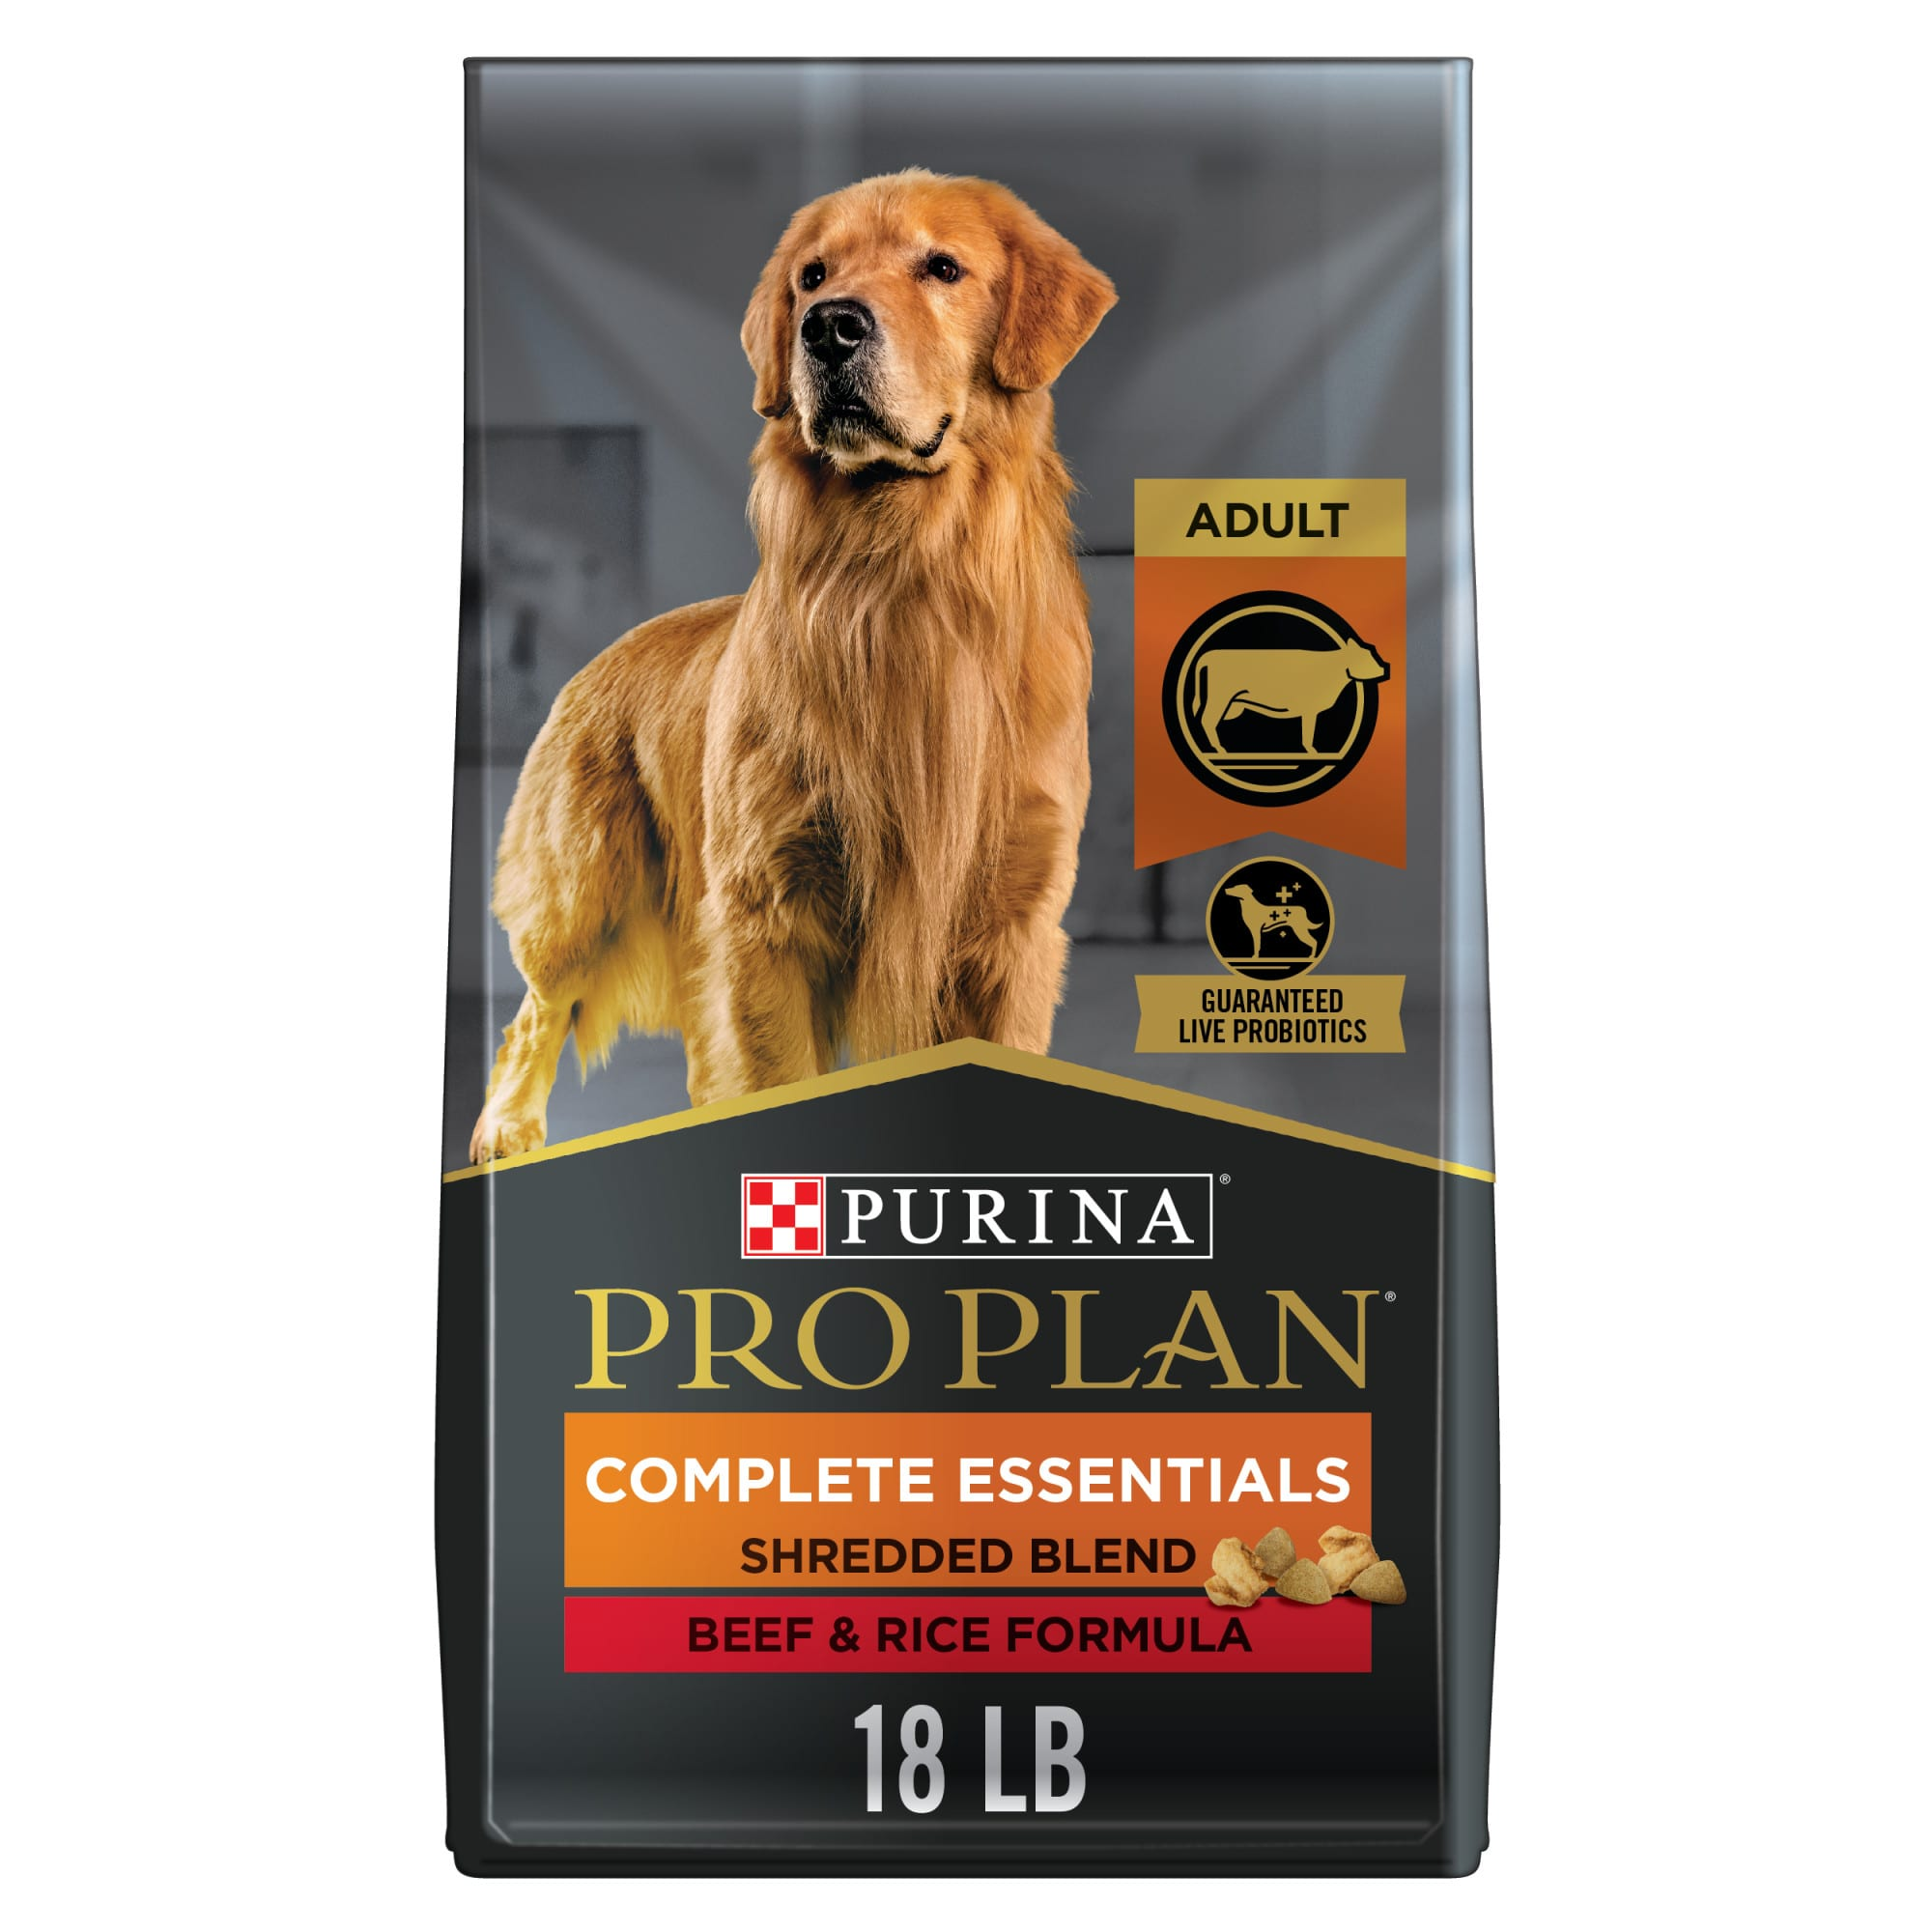 Pro Plan Shredded Blend formula offers the nutritional extras you\\\'ve come to expect from Pro Plan. We start with real beef as the #1 ingredient in a multi-textured blend of hard kibble and savory tender shredded pieces--for an optimum combination of nutrition and taste. Then we added wholesome grains, including rice and whole wheat, which are highly digestible sources of carbohydrates for energy and quality fiber sources to promote easy cleanup. Plus, we include high levels of antioxidants for overall health and wellness and an optimal protein: fat ratio to help your dog maintain lean muscle mass and a healthy body condition. Moreover, we carefully select each ingredient for its nutritional value and to ensure it meets our strict quality standards, as well as yours.